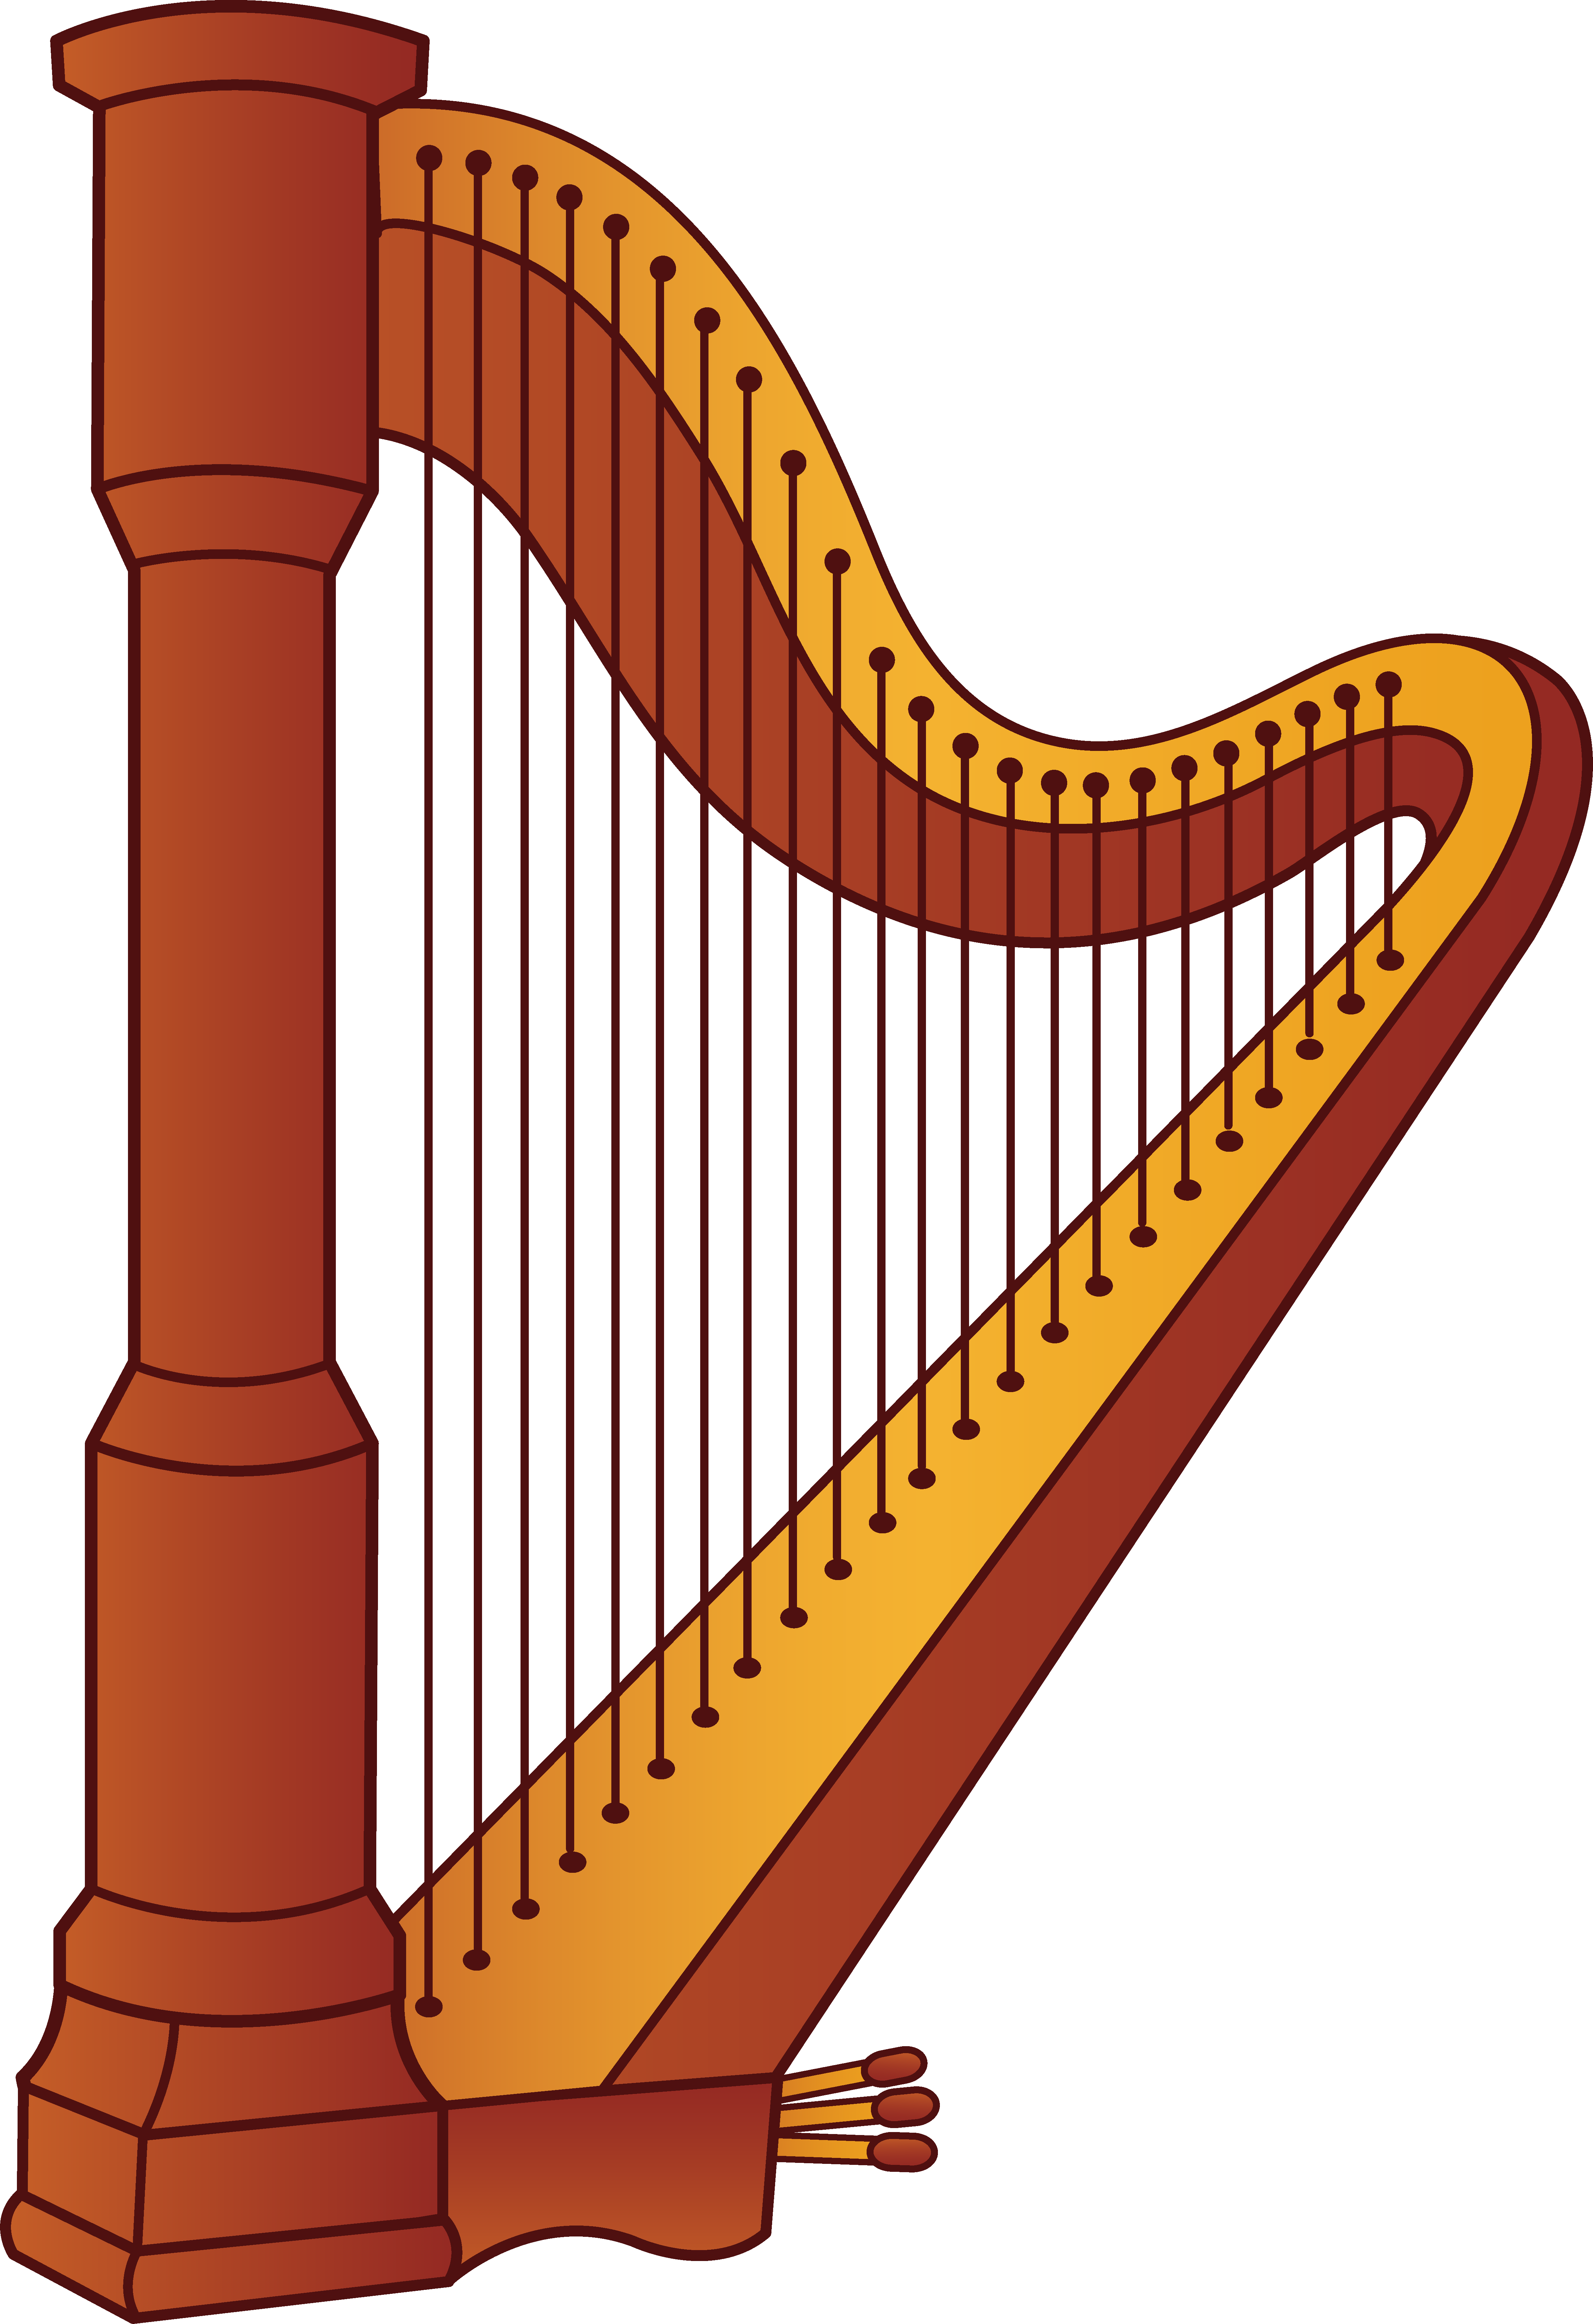 Musical thanksgiving clipart free graphic royalty free download Harp Musical Instrument | Harp music | Pinterest | Musical ... graphic royalty free download